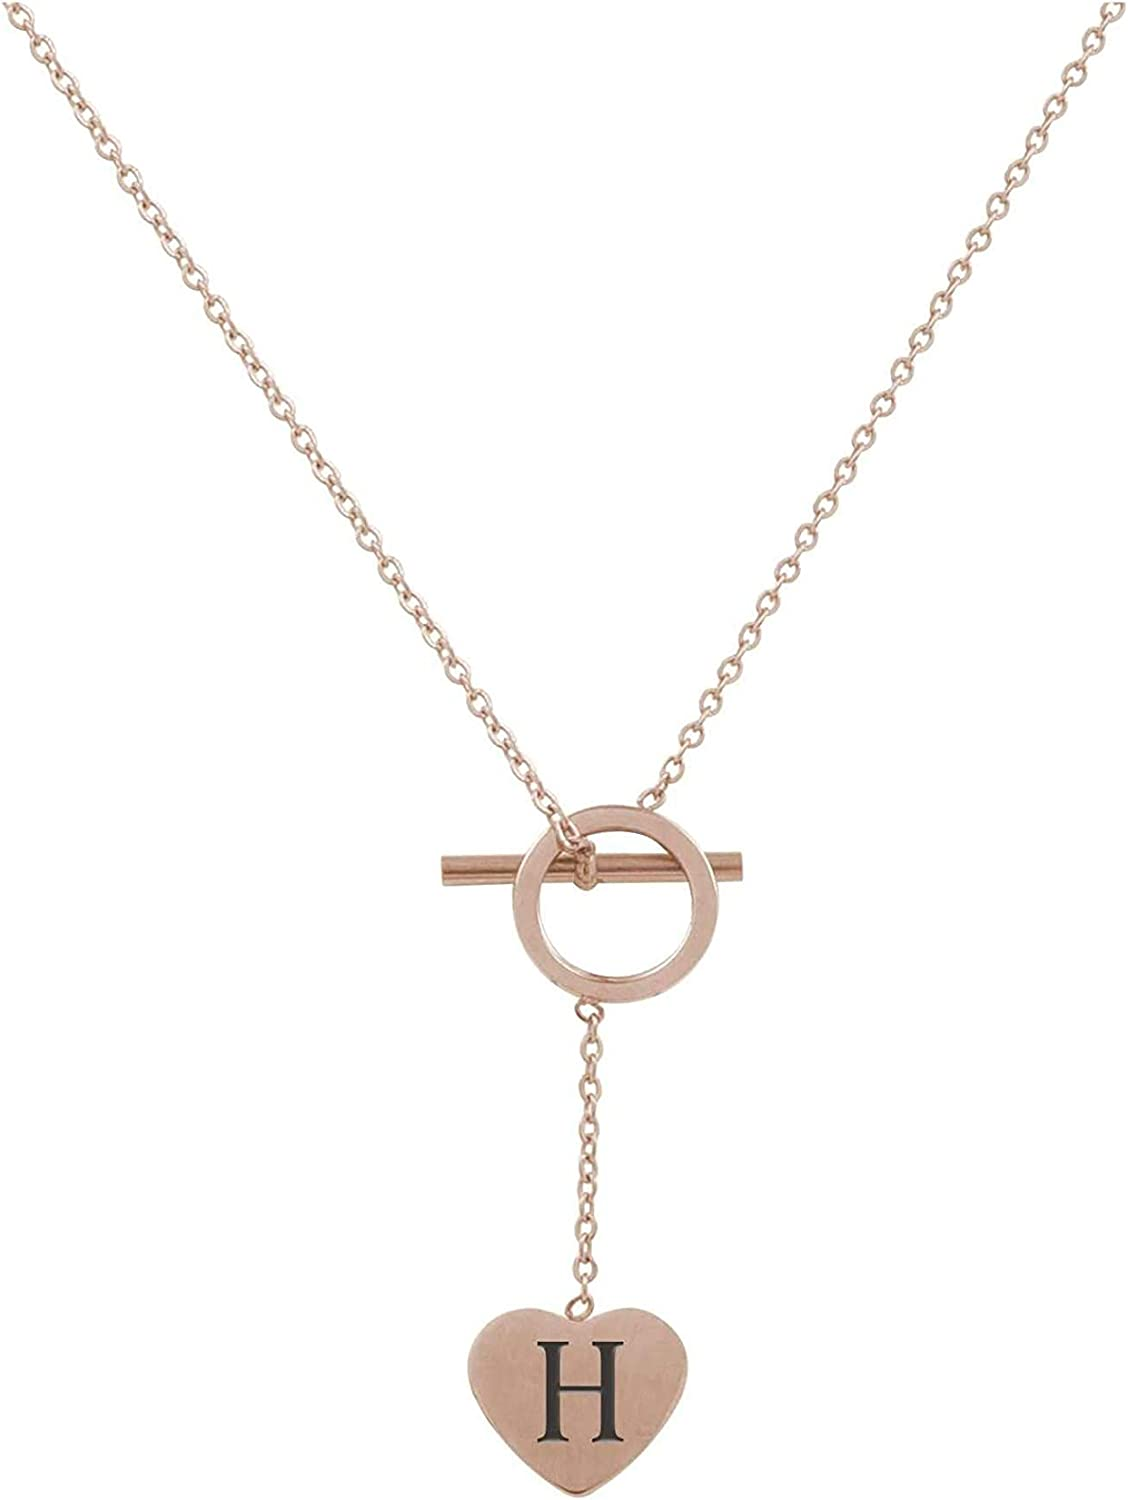 Pink Box Heart Lariat Initial Necklace H - Rose Gold